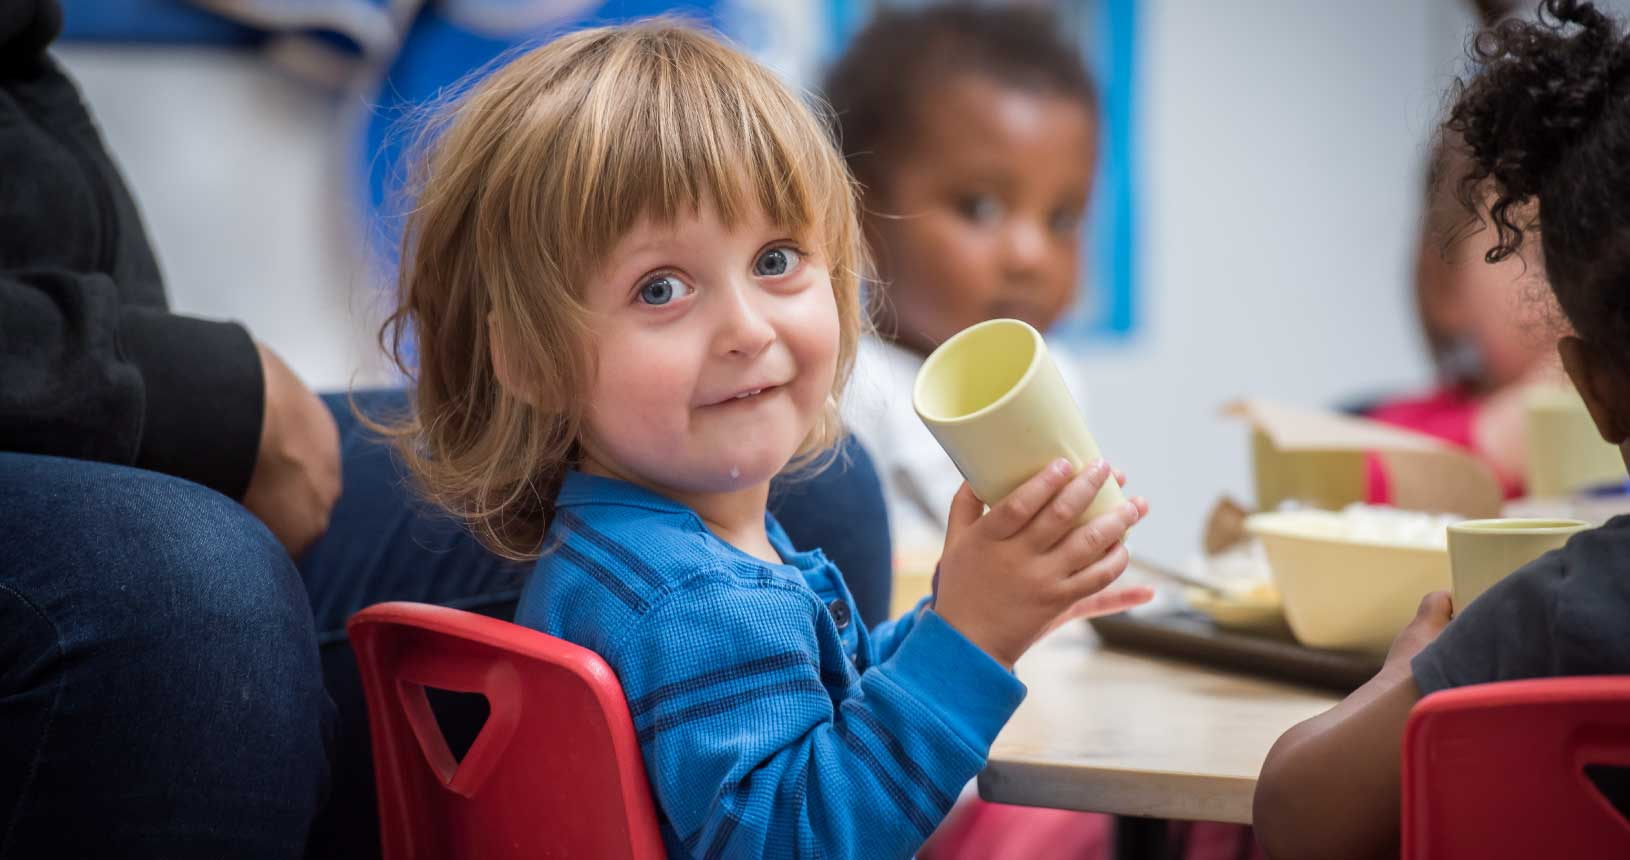 A young child turns to face the camera while holding a cup